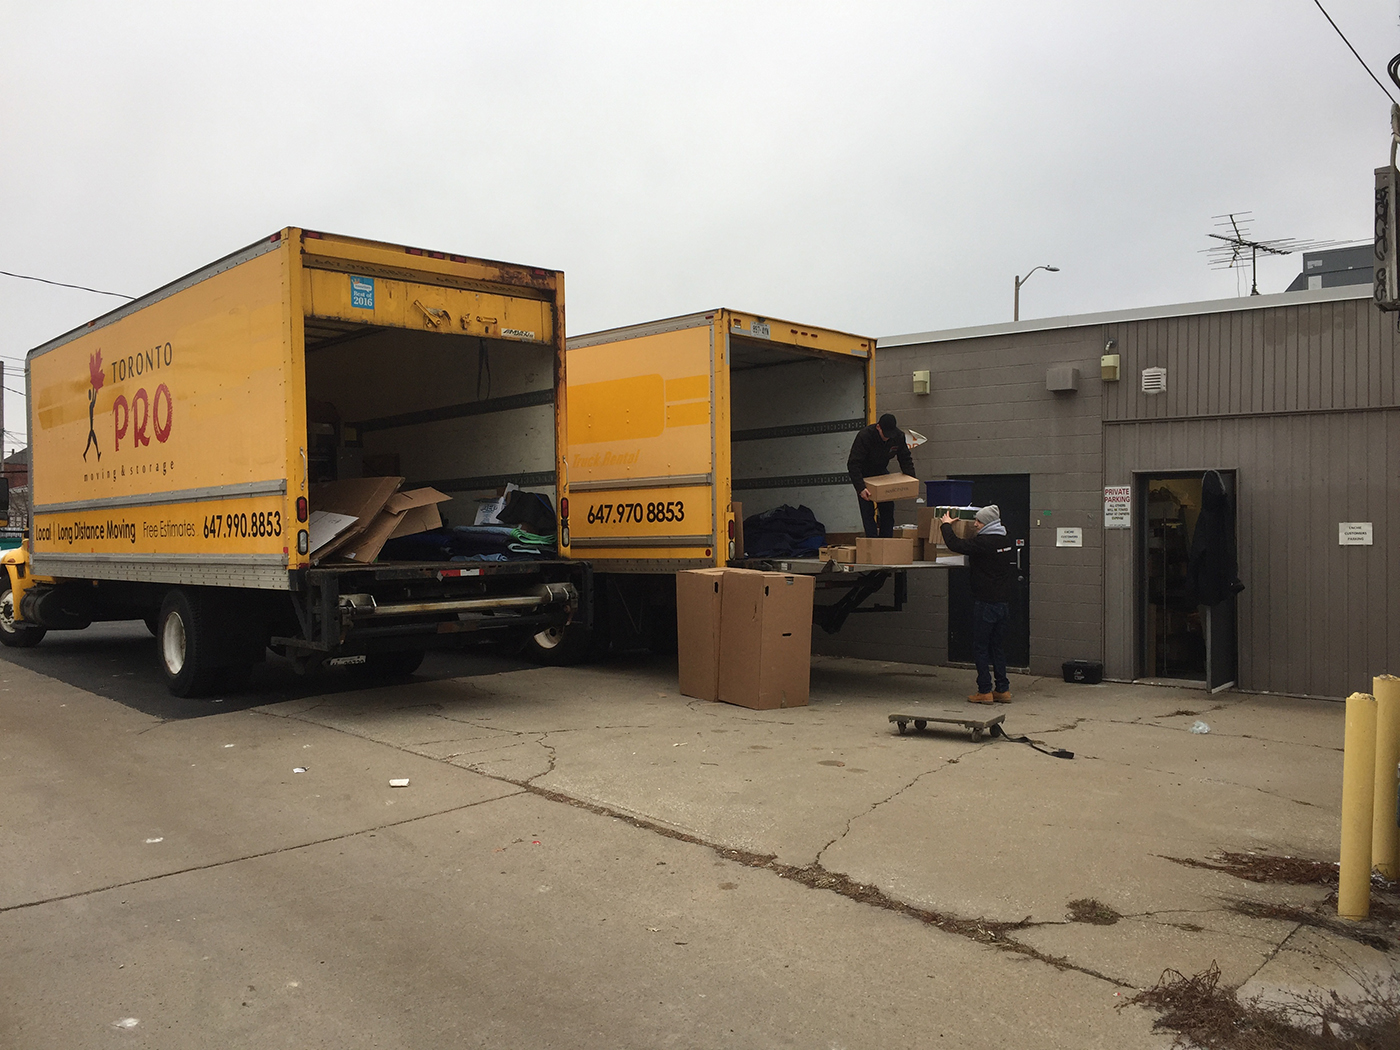 Moving Company Toronto Preparing for Action